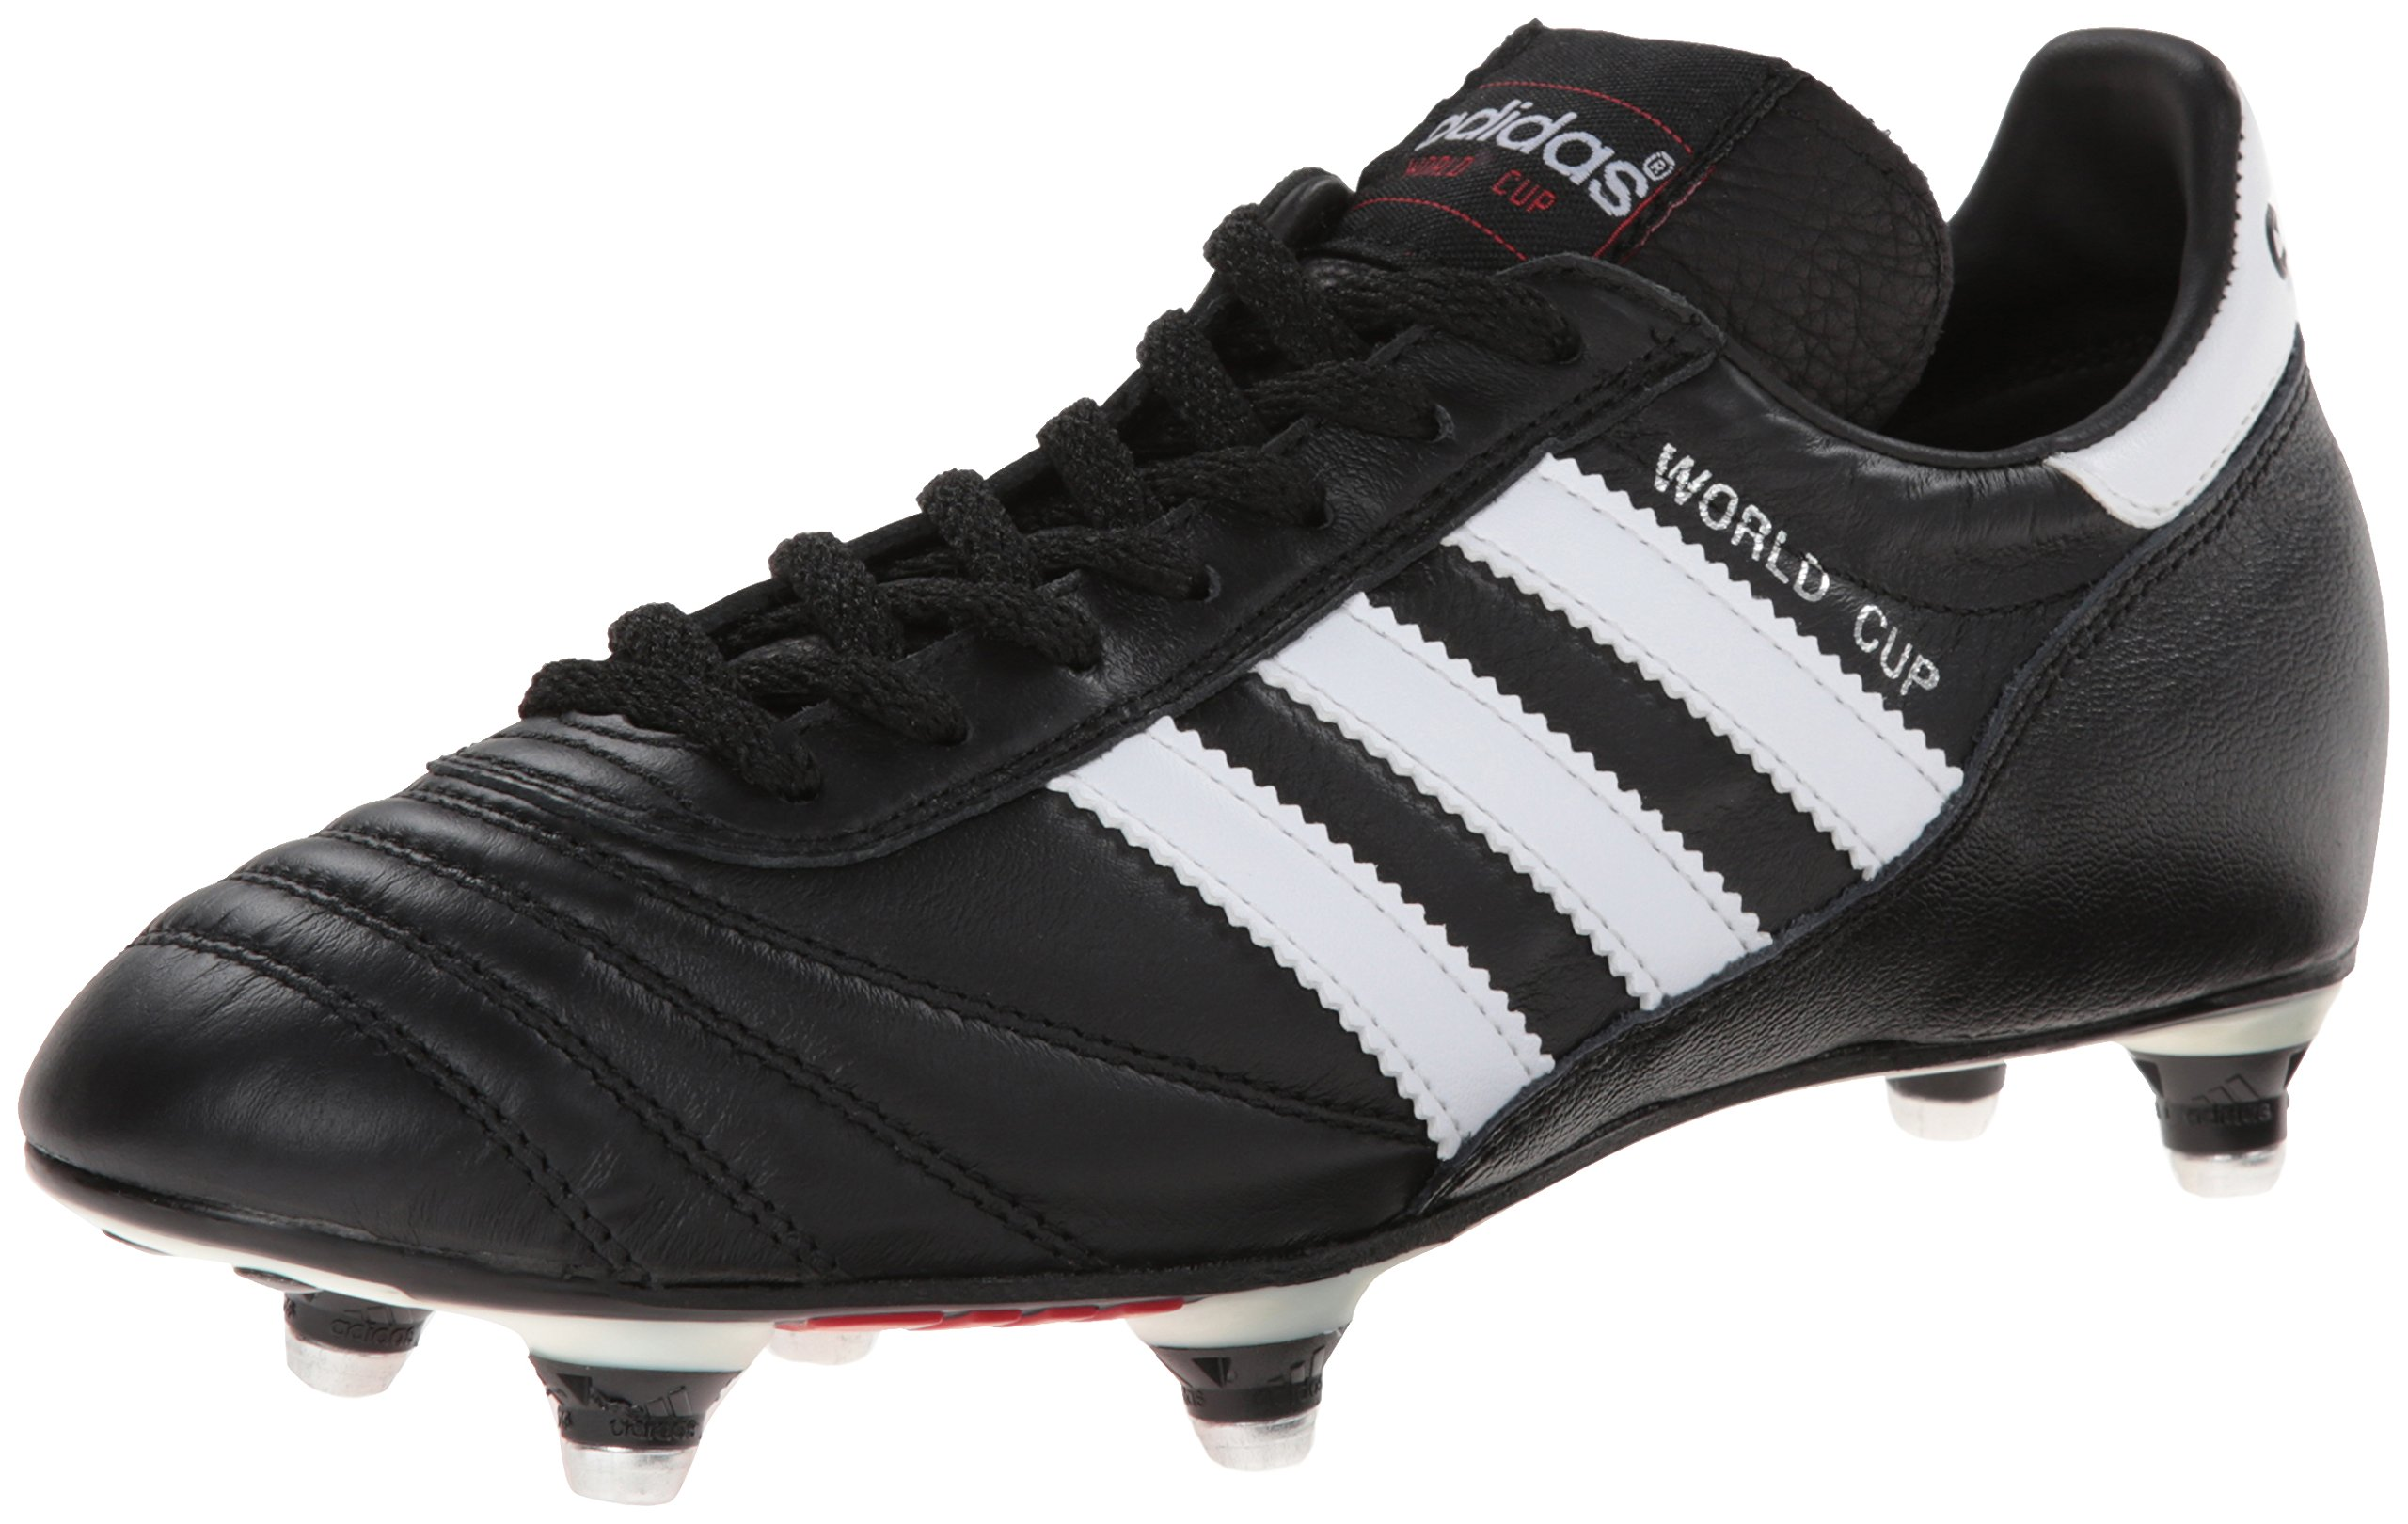 adidas Performance Men's World Cup Soccer Cleat,Black/White,8.5 M US